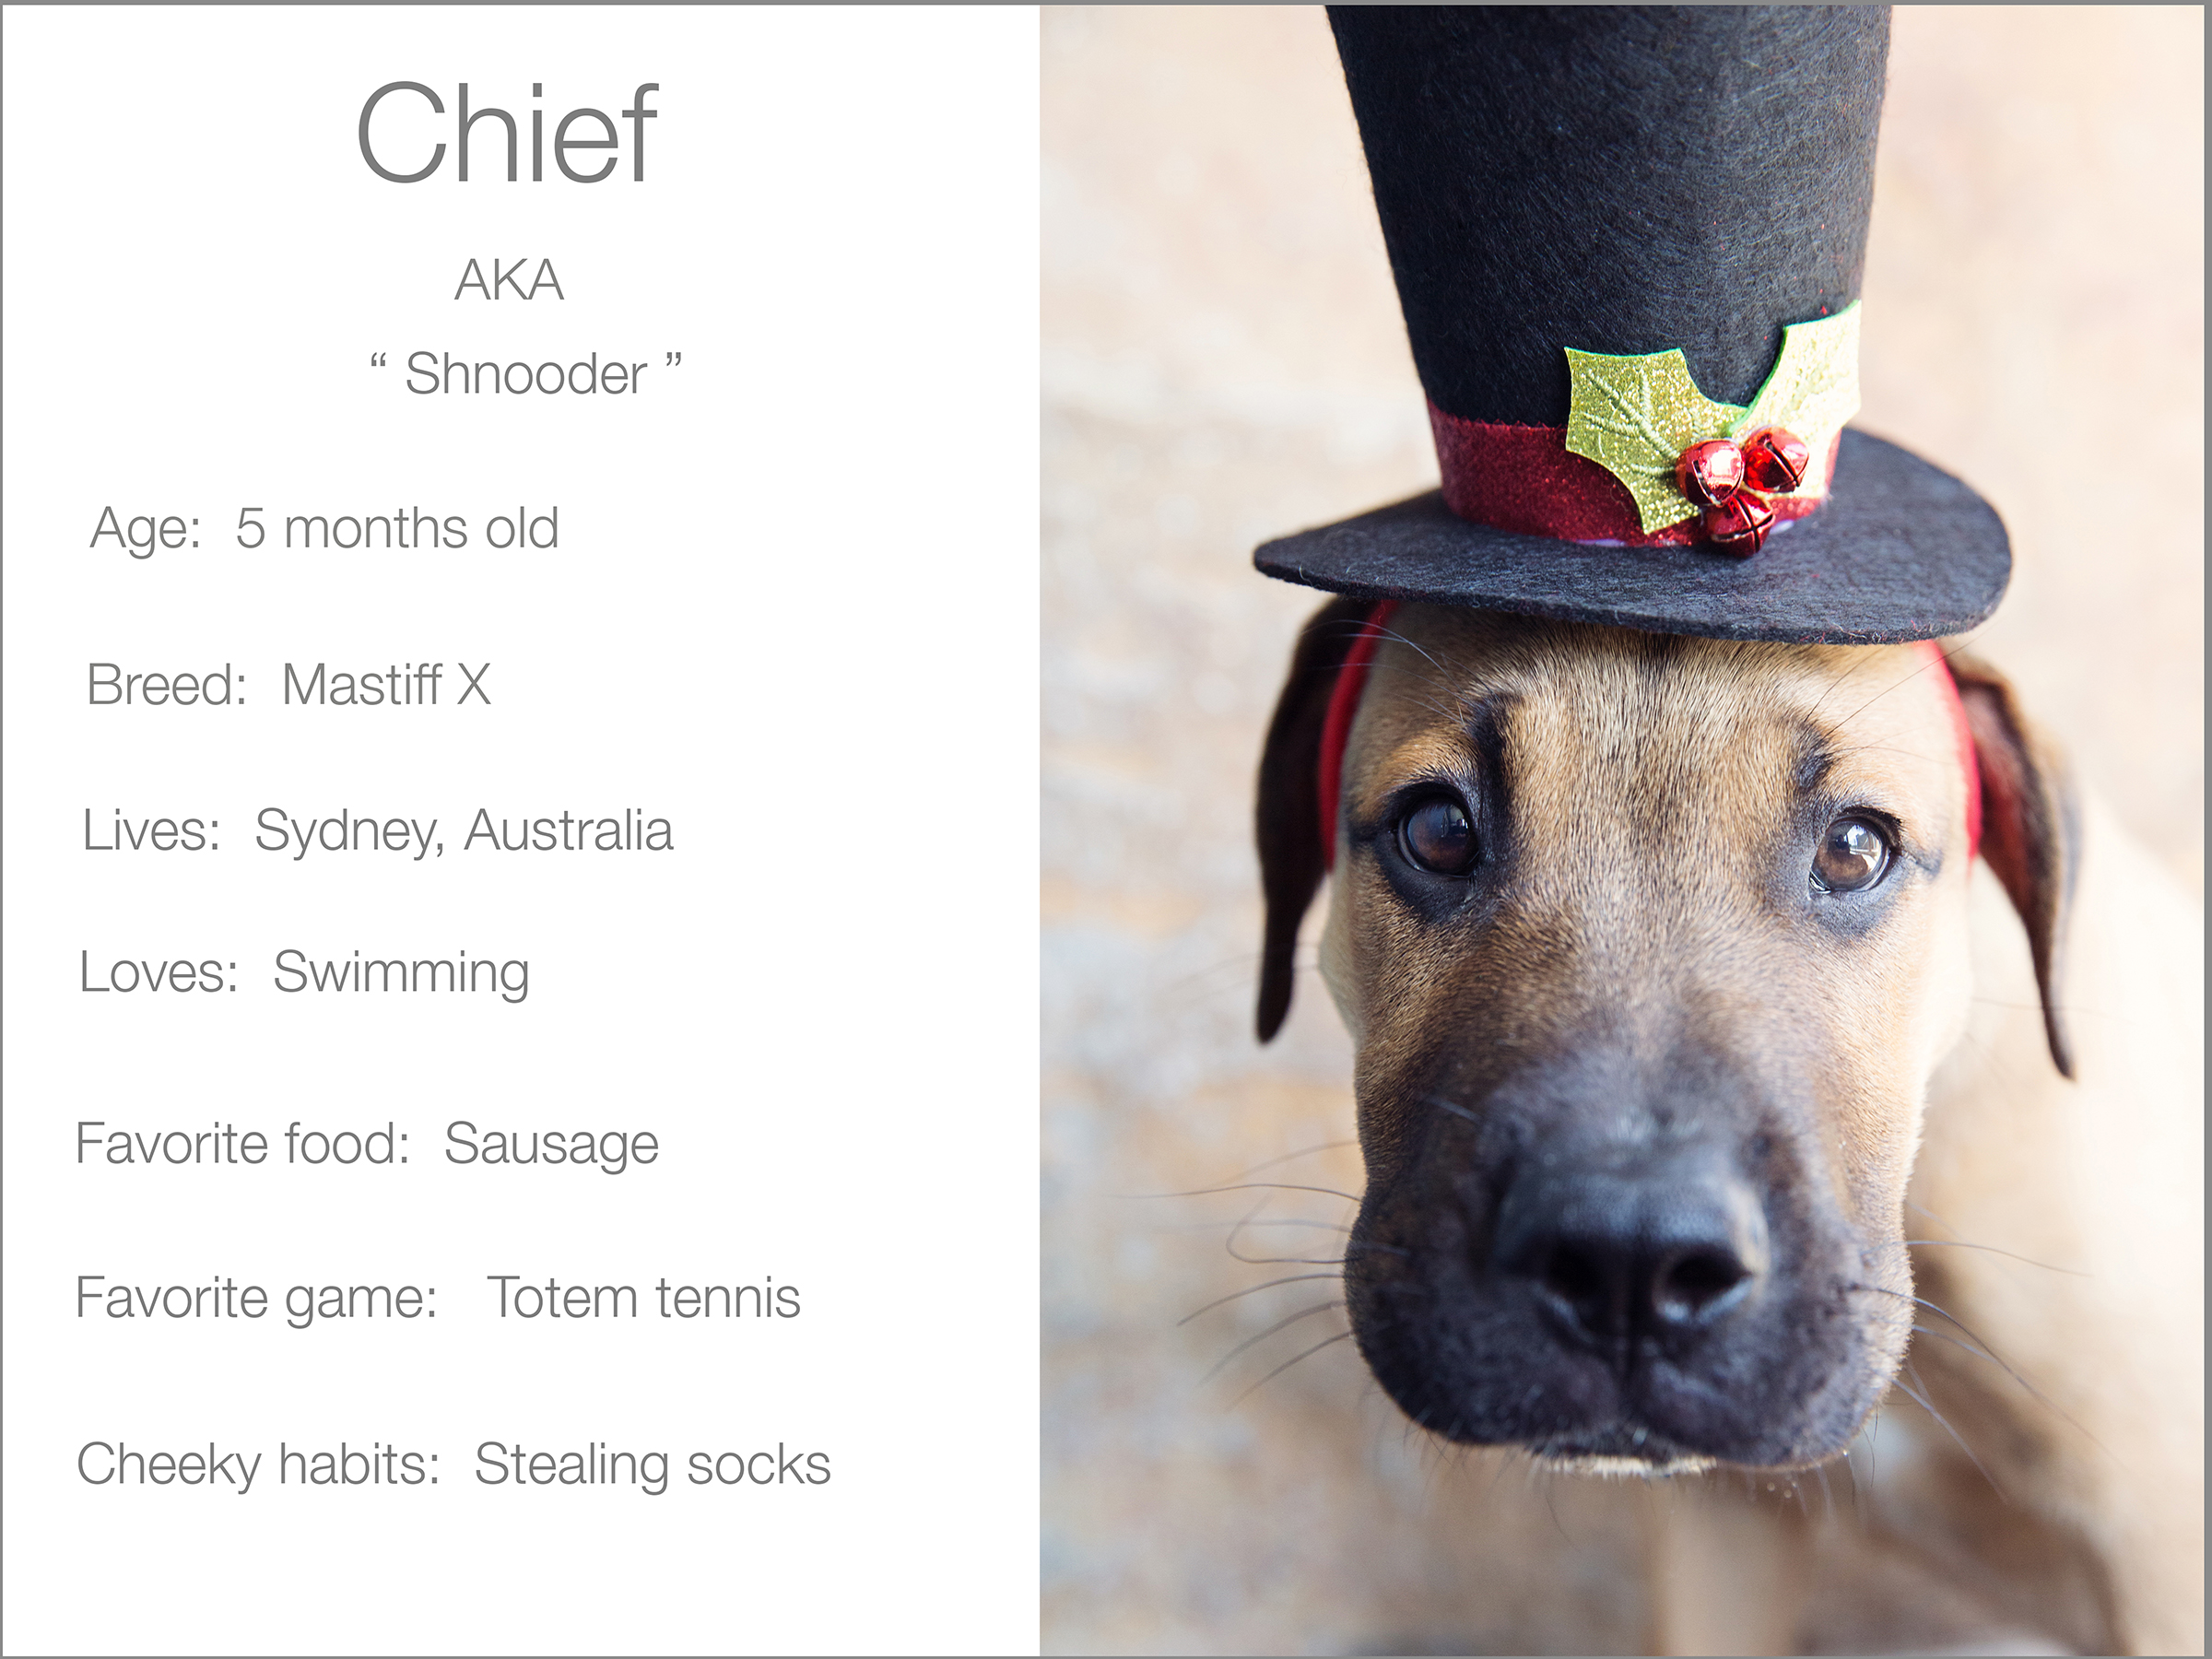 Chief profile dogs_and_the_city kristie_lee_photographer Charlie.jpg